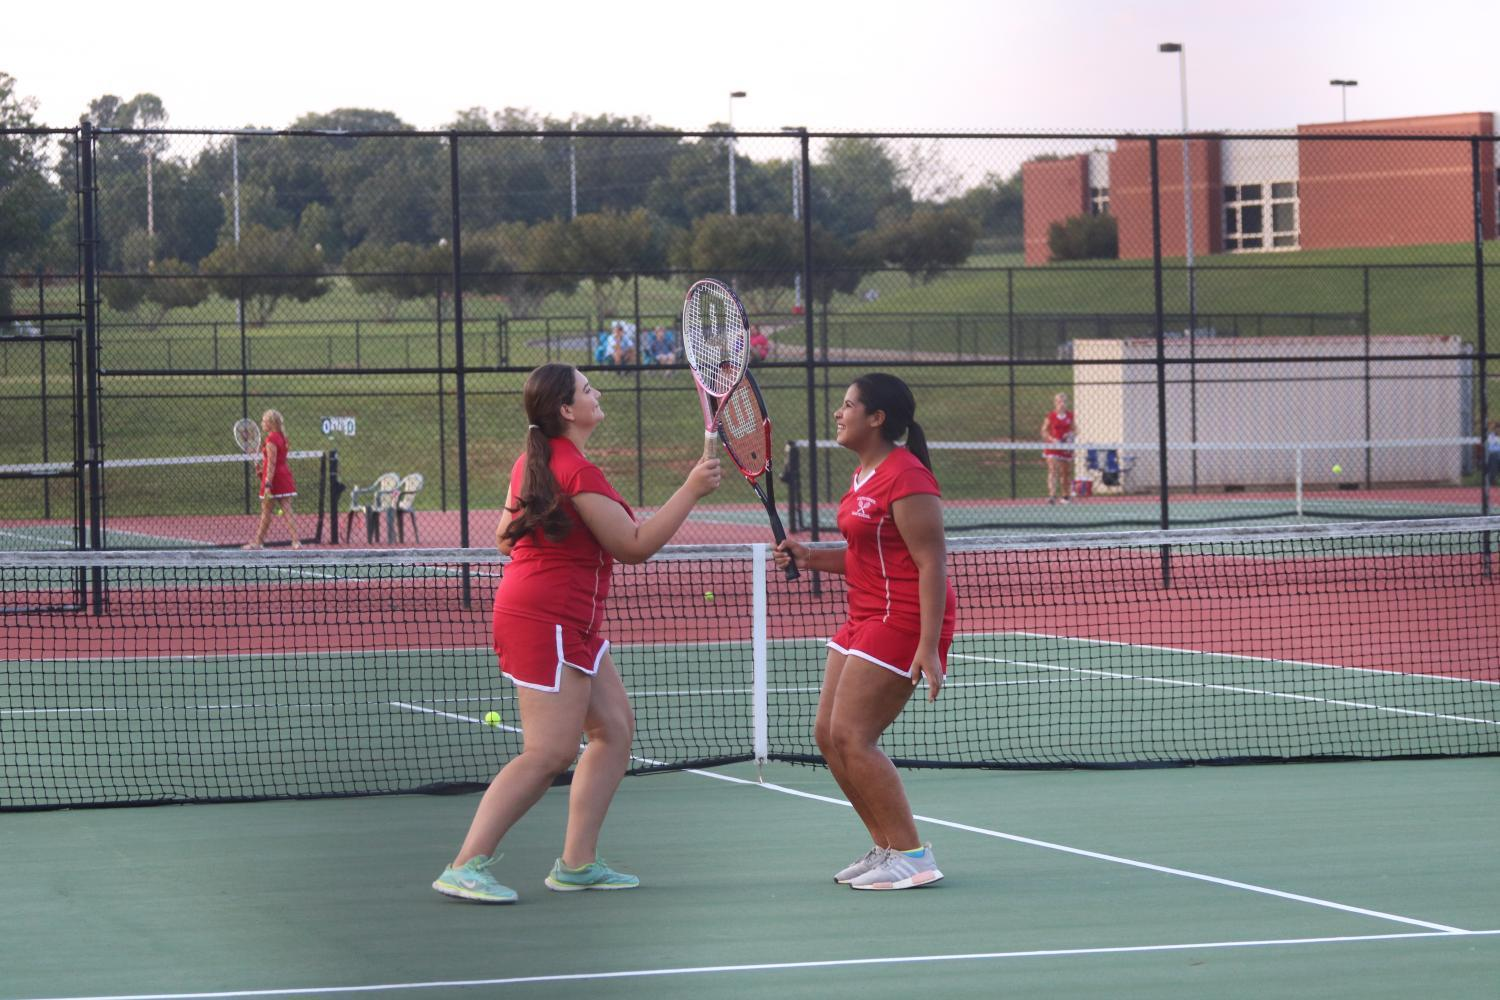 Teammates celebrate after winnning their match, playing as doubles.